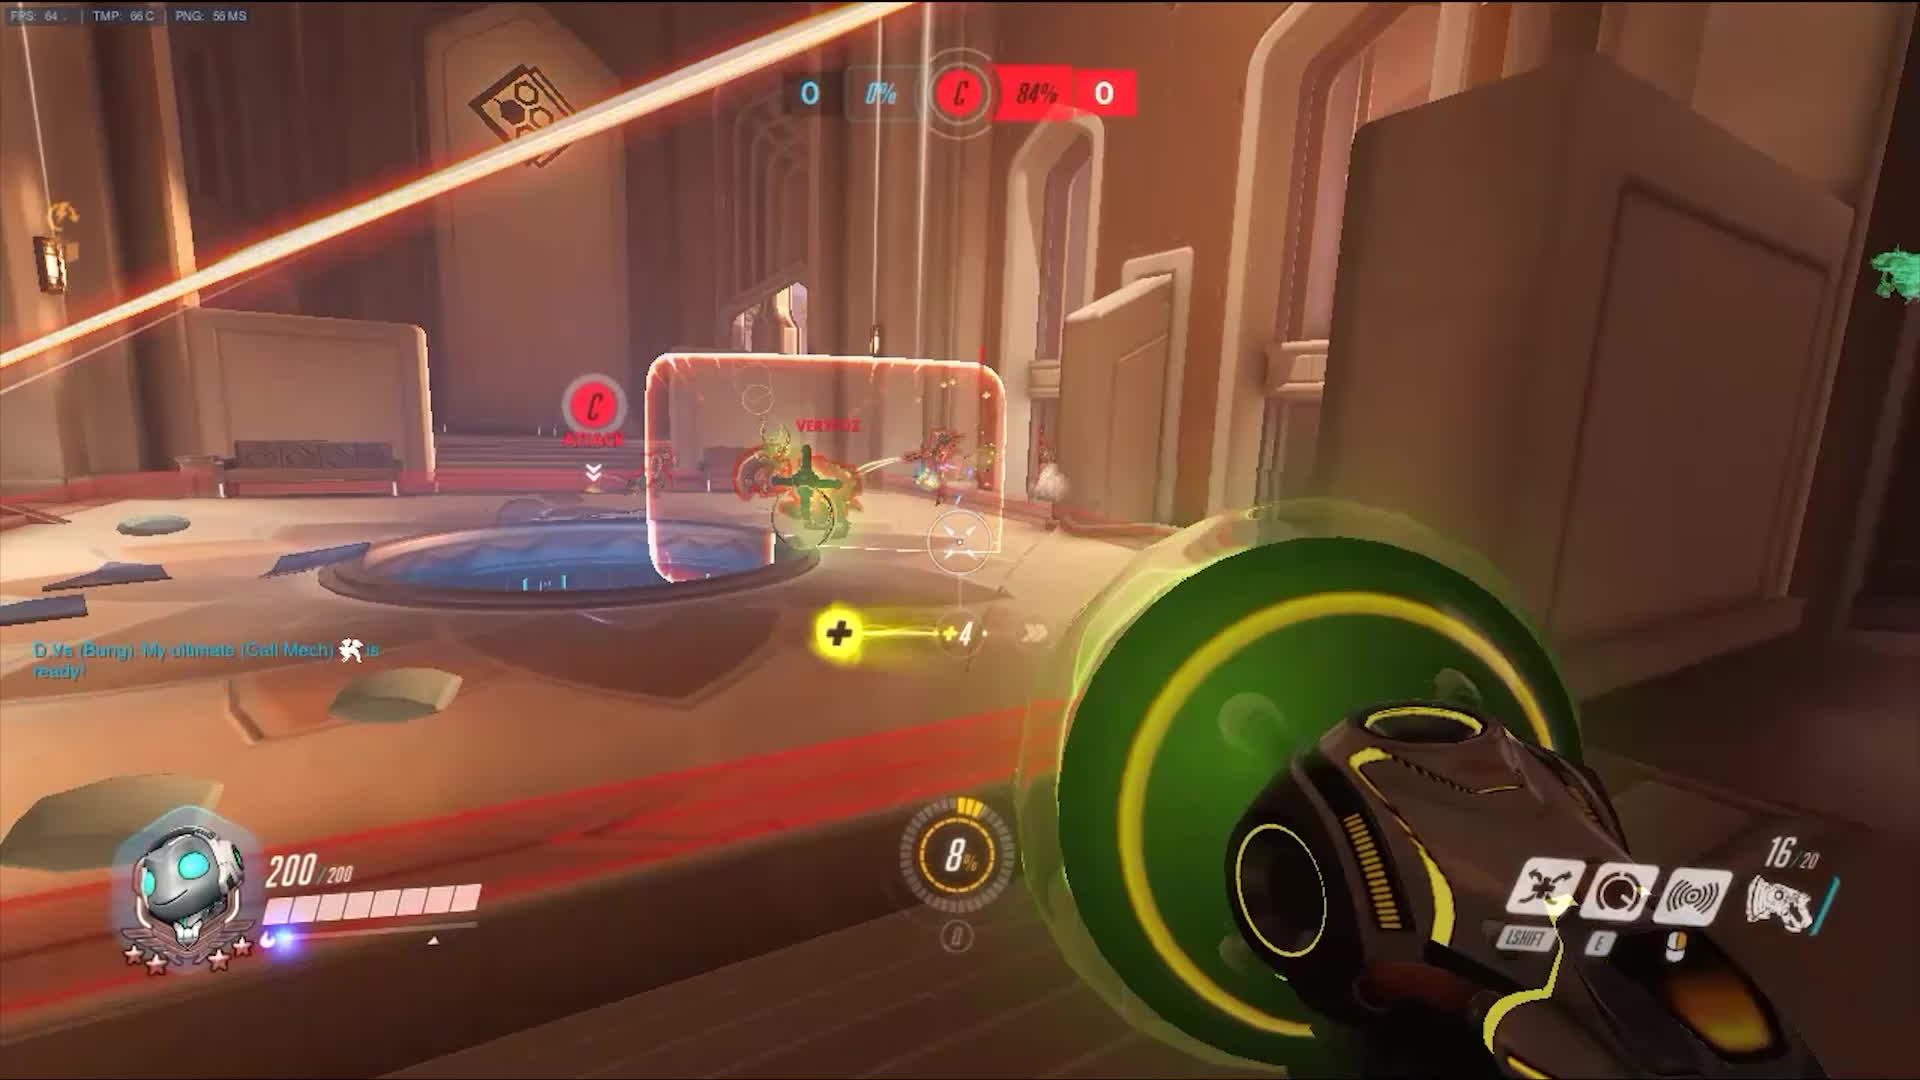 Overwatch_Memes, Overwatchmemes, oasis, D.va does a KOBE GIFs